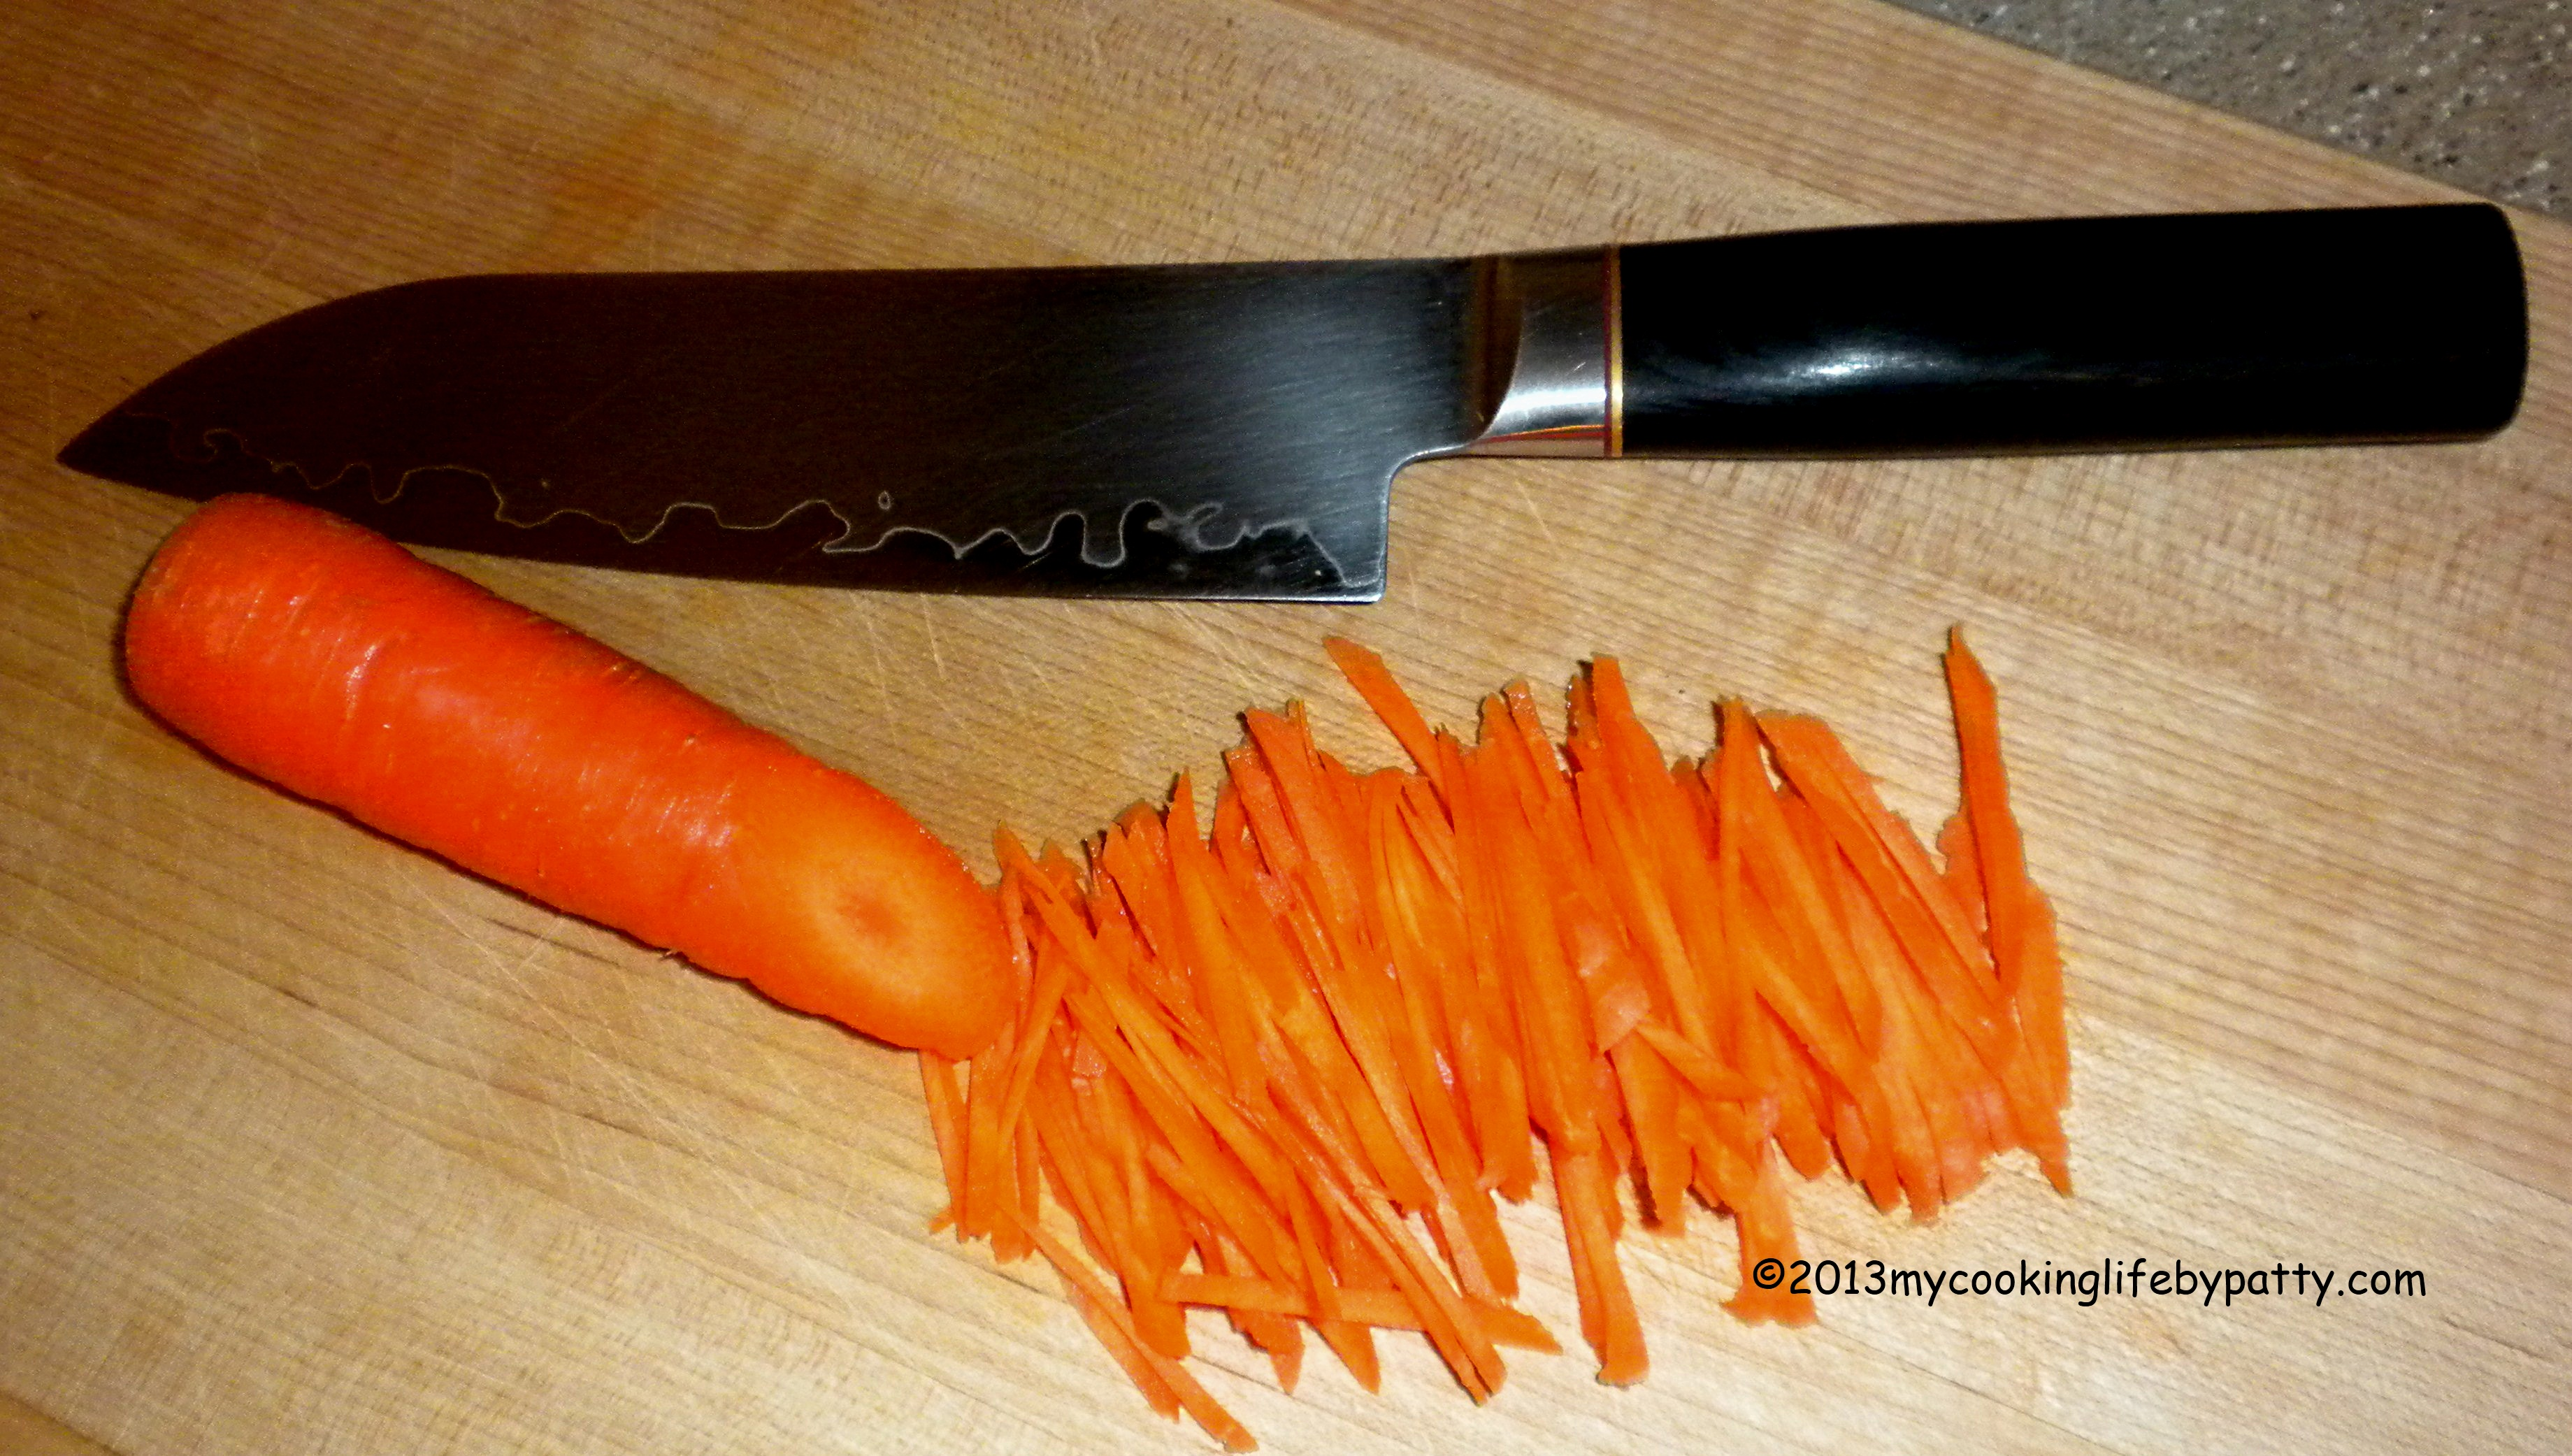 The carrot was sliced at an angle to even out the size throughout and then cut into matchsticks.